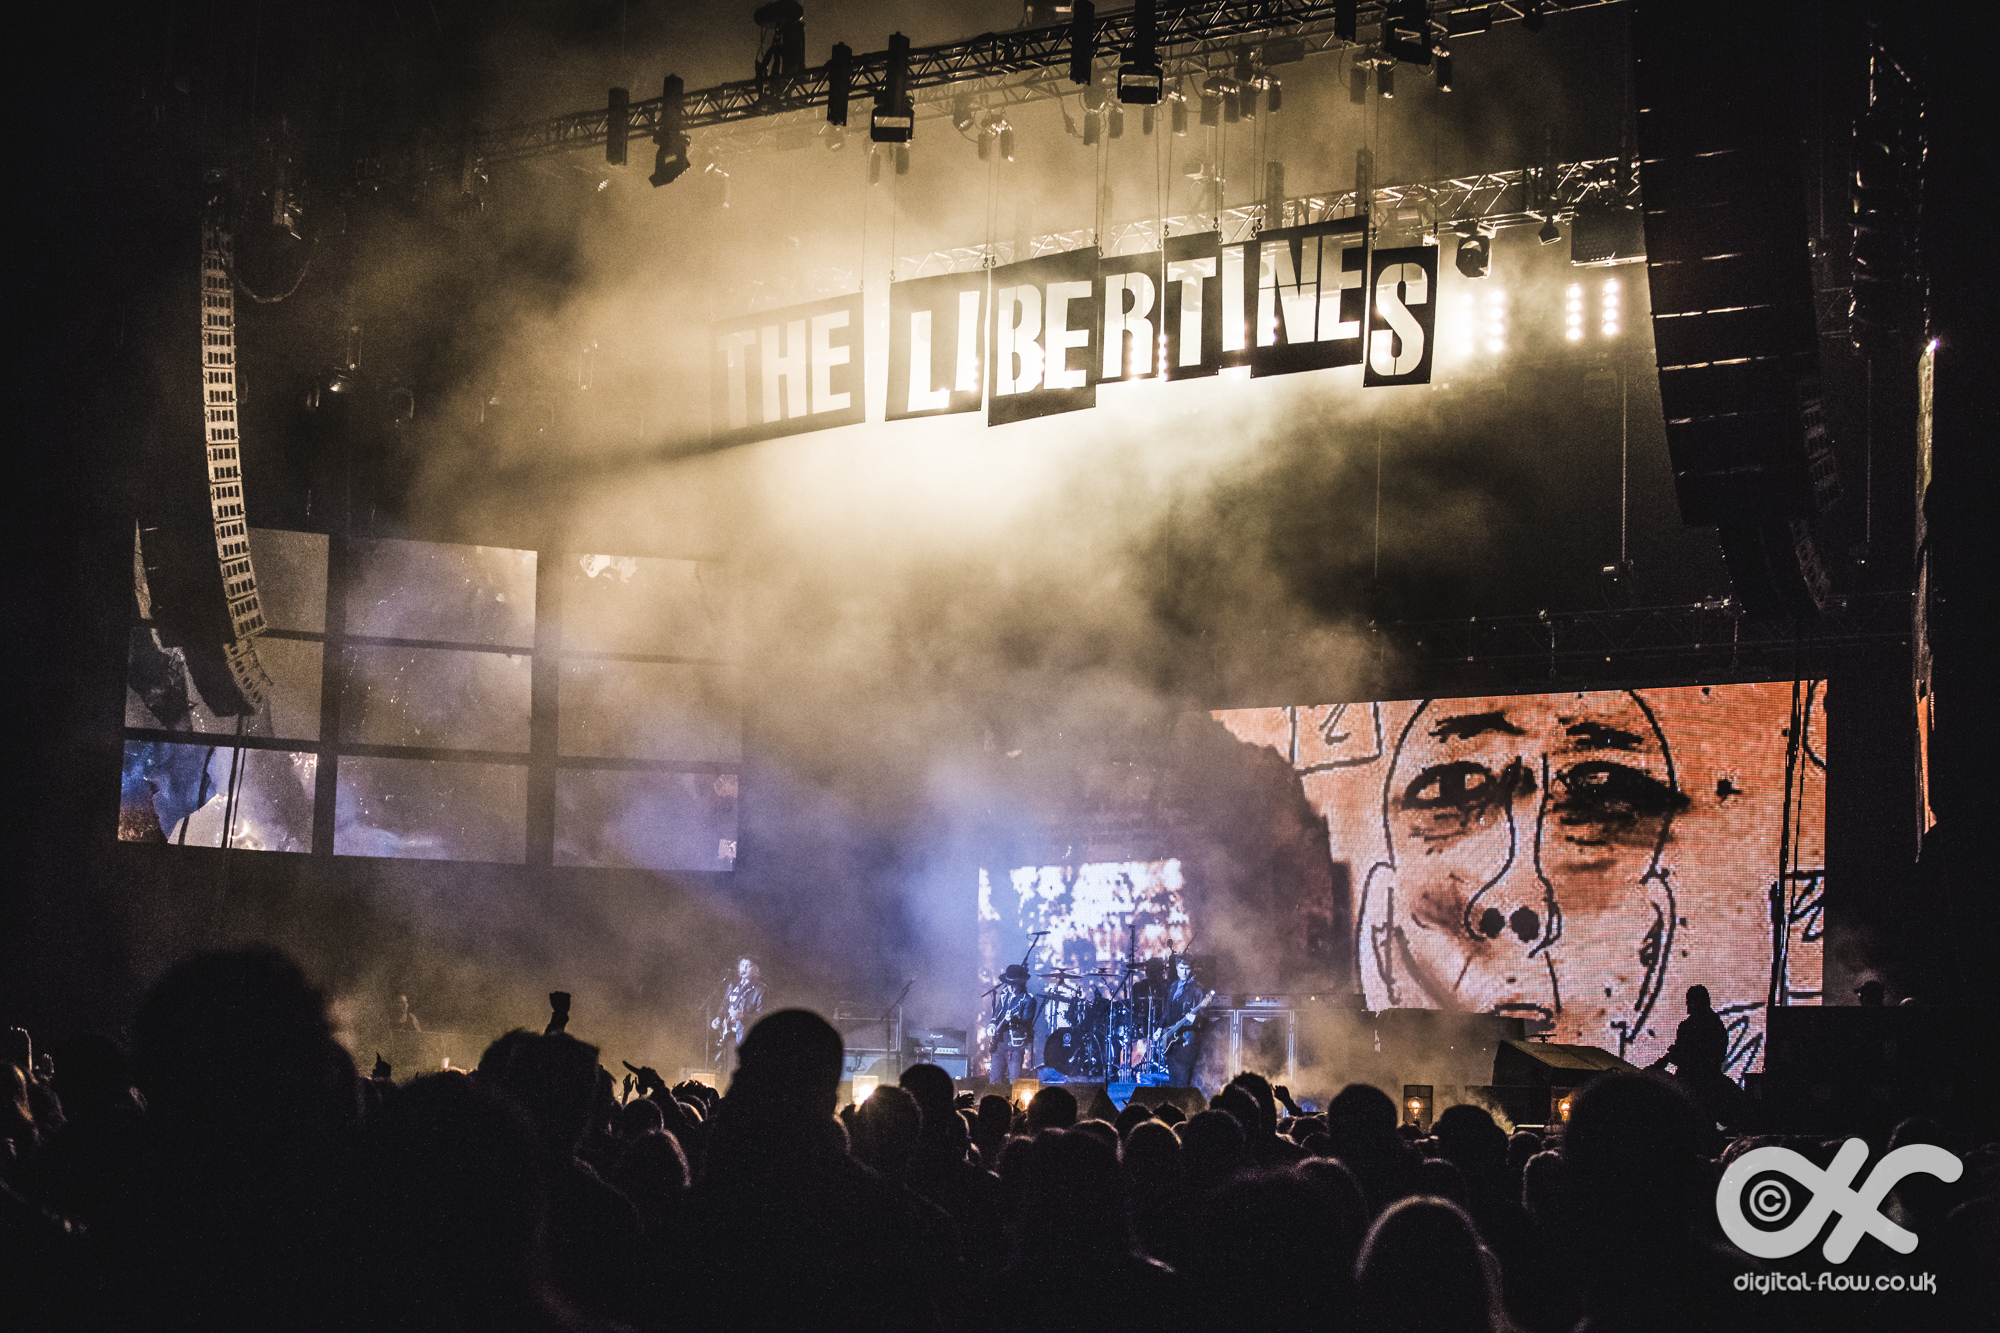 The Libertines @ Barclaycard Arena